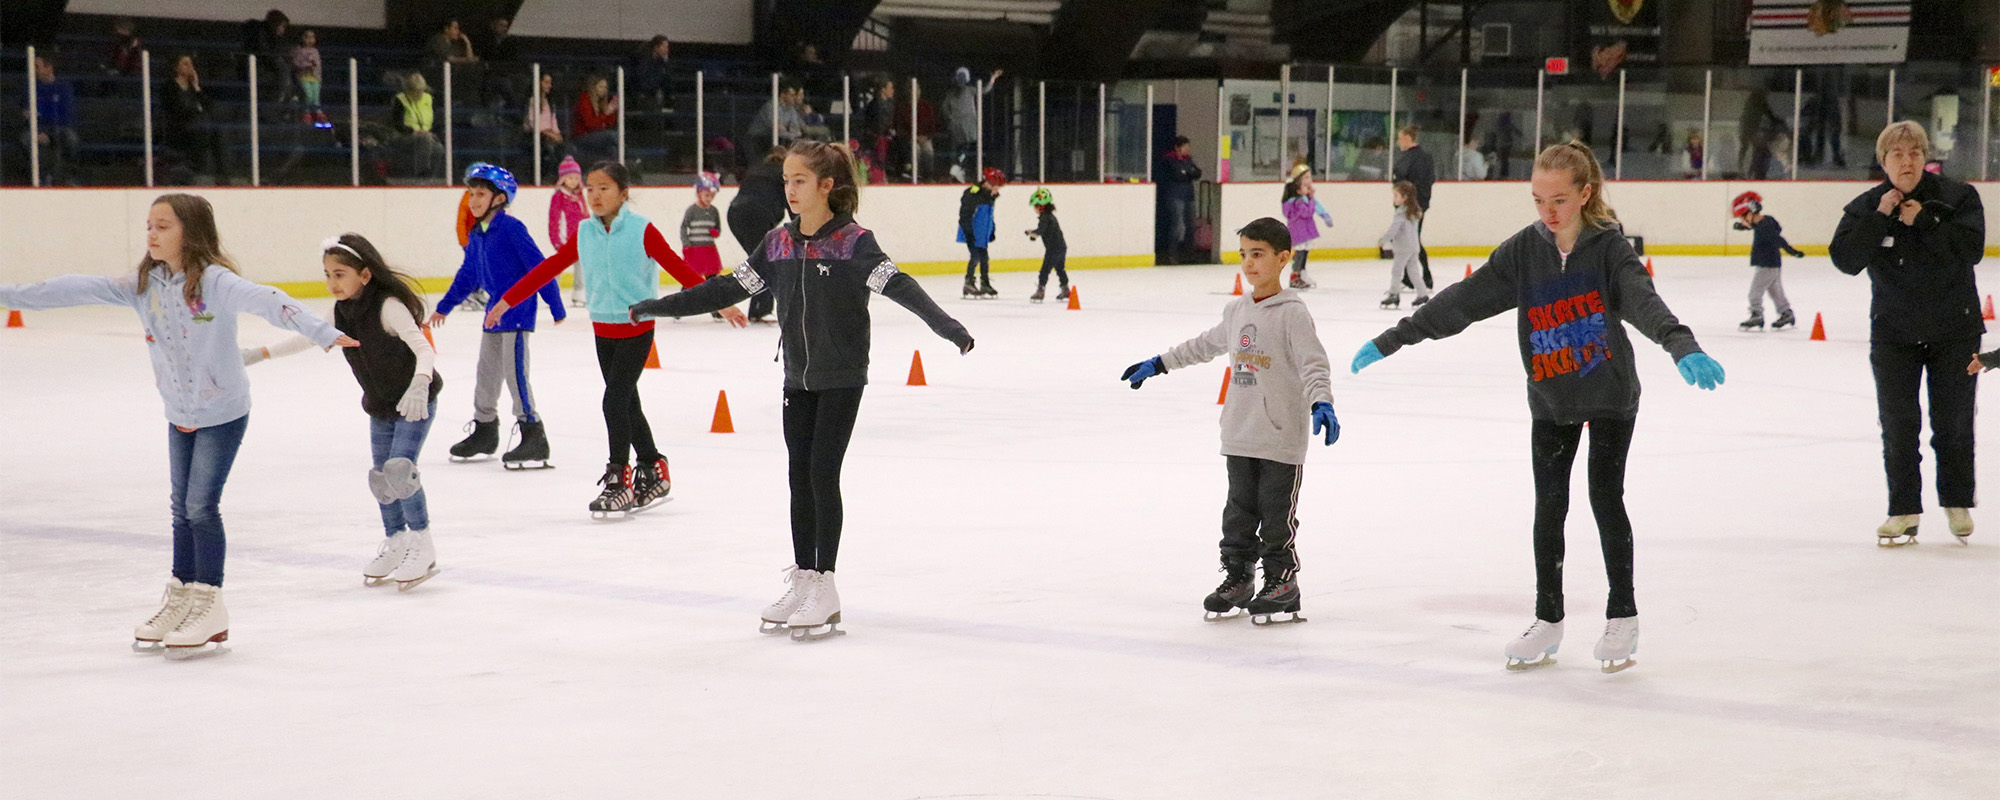 Try Skating or Hockey for FREE August 25!